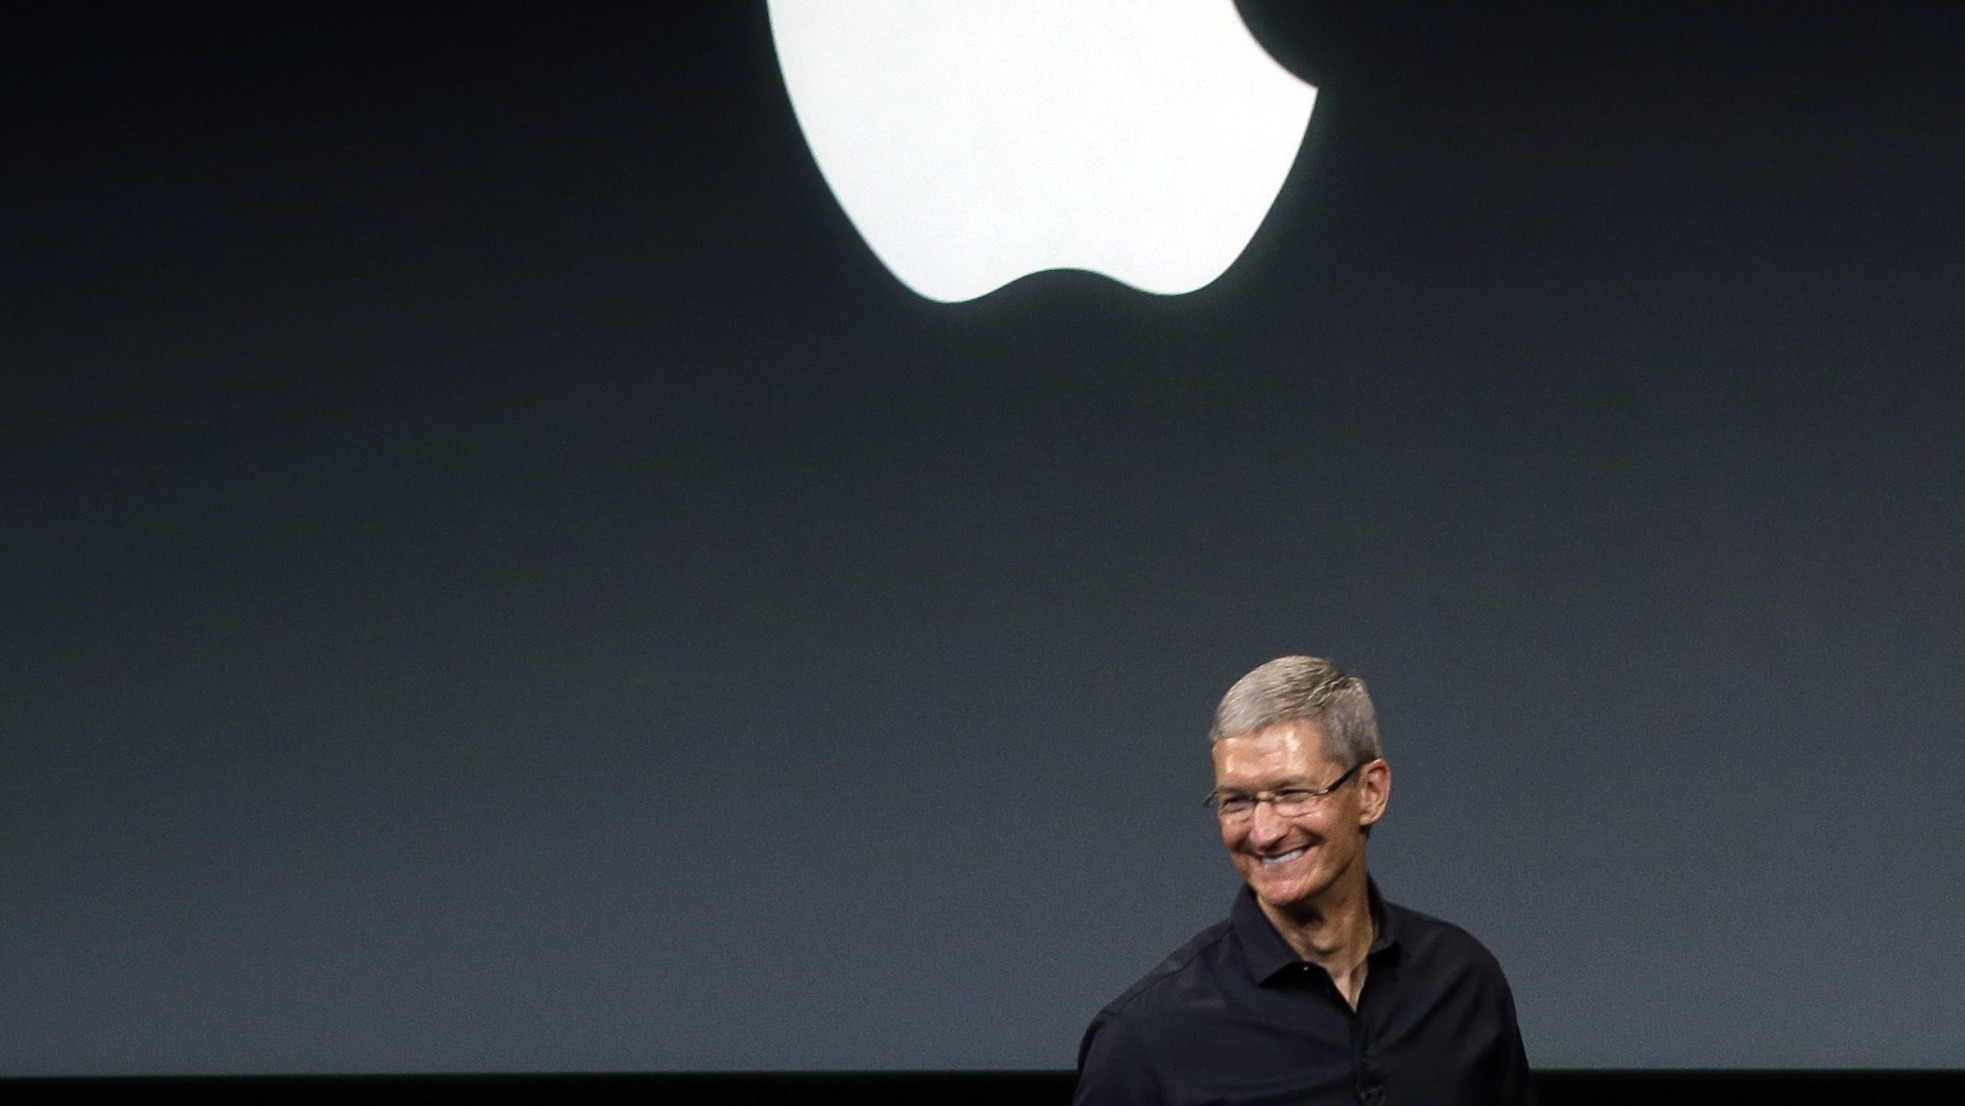 Apple CEO Tim Cook speaks on stage before a new product introduction in Cupertino, Calif., Tuesday, Sept. 10, 2013. (AP Photo/Marcio Jose Sanchez)